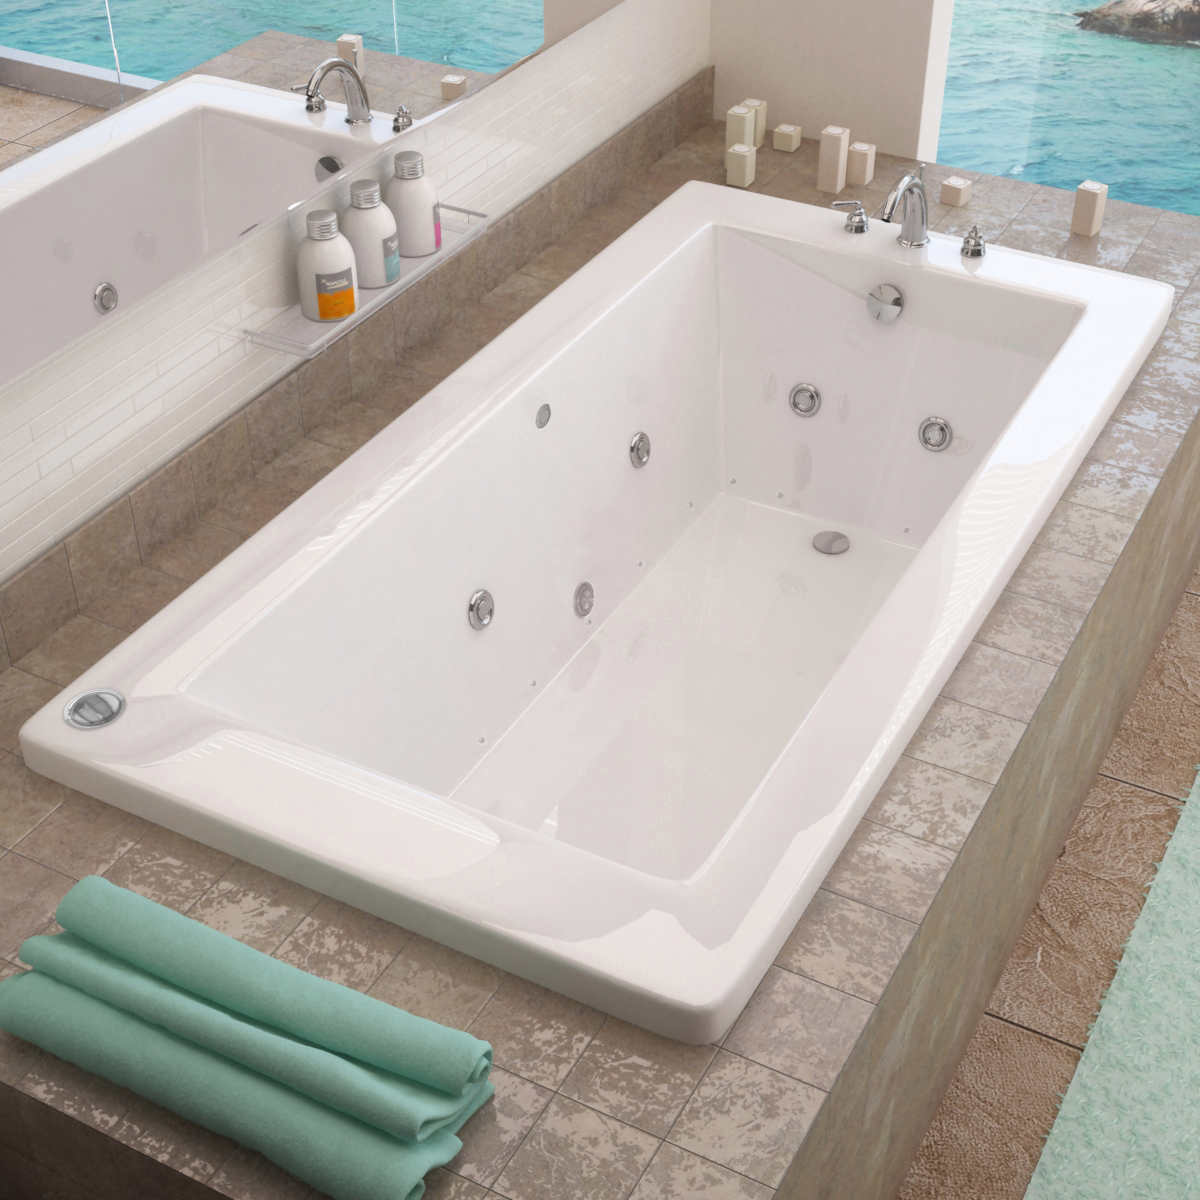 Air Jet Bathtub - Bathtub Ideas